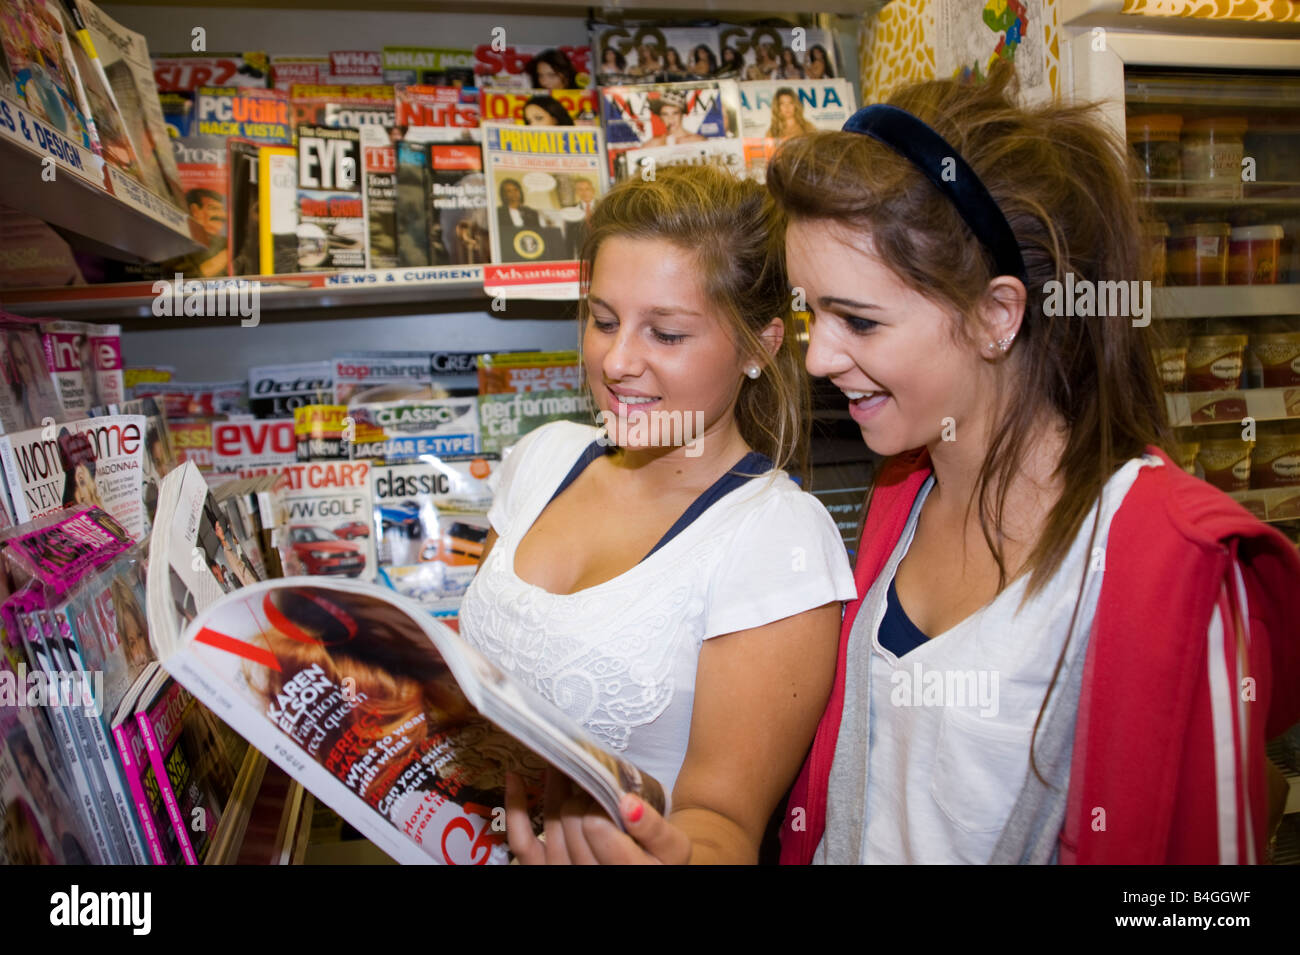 2 teenage girls looking at a fashion magazine in a shop. 2 teenage girls looking at a fashion magazine in a shop Stock